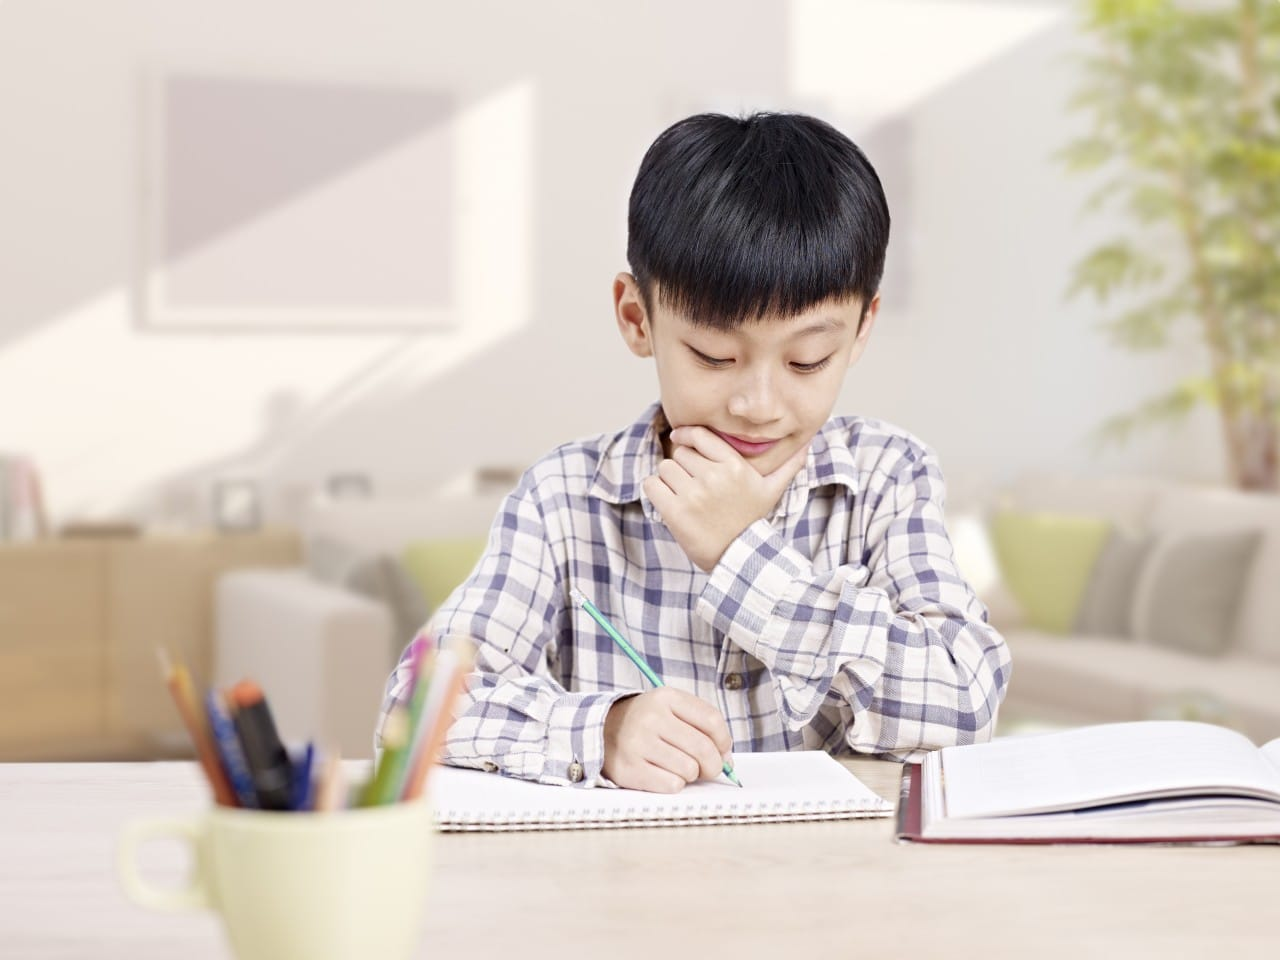 the importance of homework Why homework should be balanced homework can boost learning, but doing too much can be detrimental the national pta and national education association support the 10-minute homework rule, which recommends 10 minutes of homework per grade level, per night (10 minutes for first grade, 20 minutes for second grade, and so on, up to two hours.